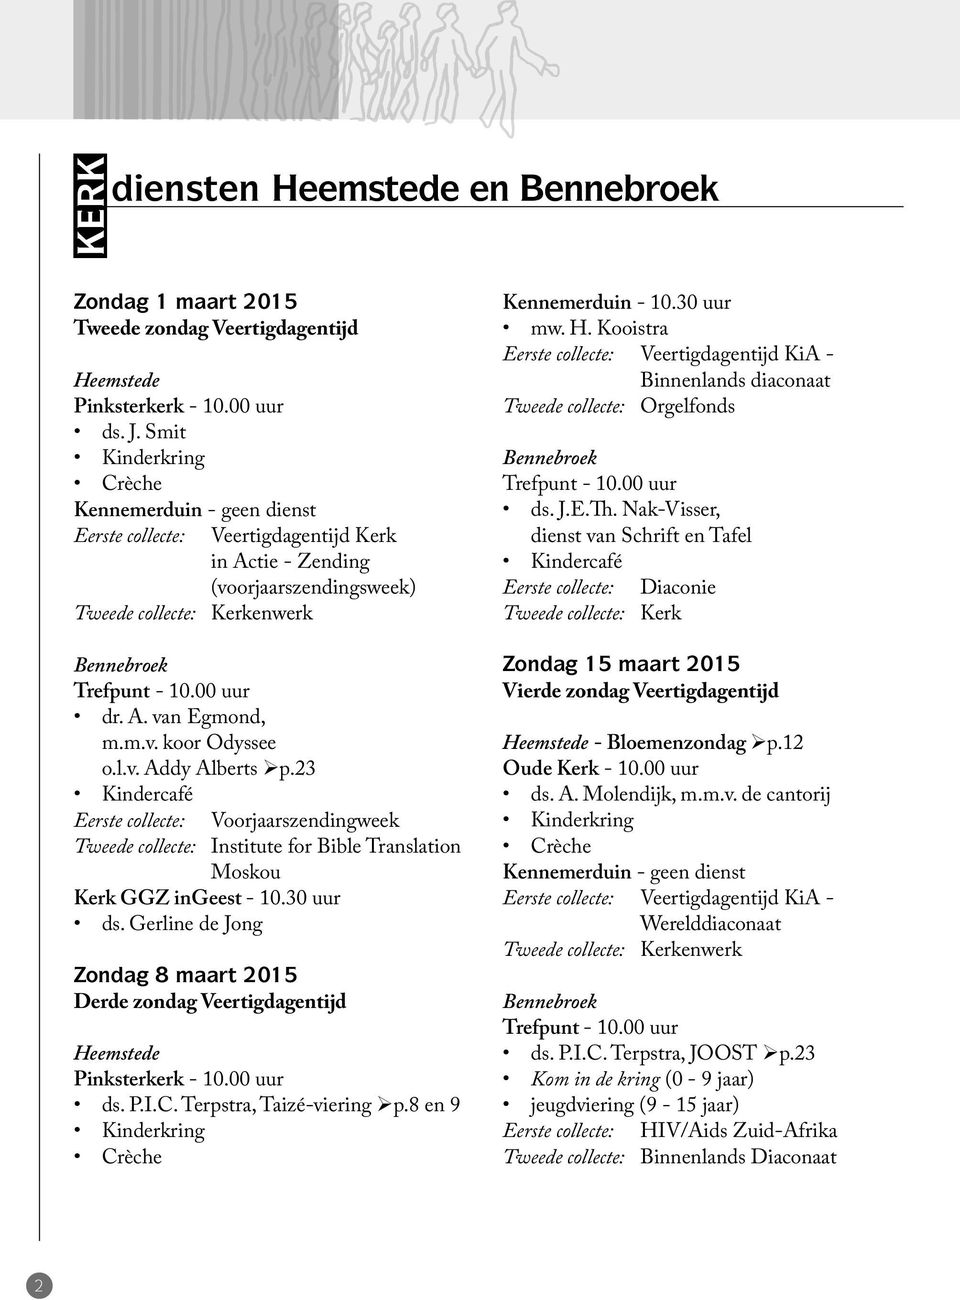 m.v. koor Odyssee o.l.v. Addy Alberts p.23 Kindercafé Eerste collecte: Voorjaarszendingweek Tweede collecte: Institute for Bible Translation Moskou Kerk GGZ ingeest - 10.30 uur ds.